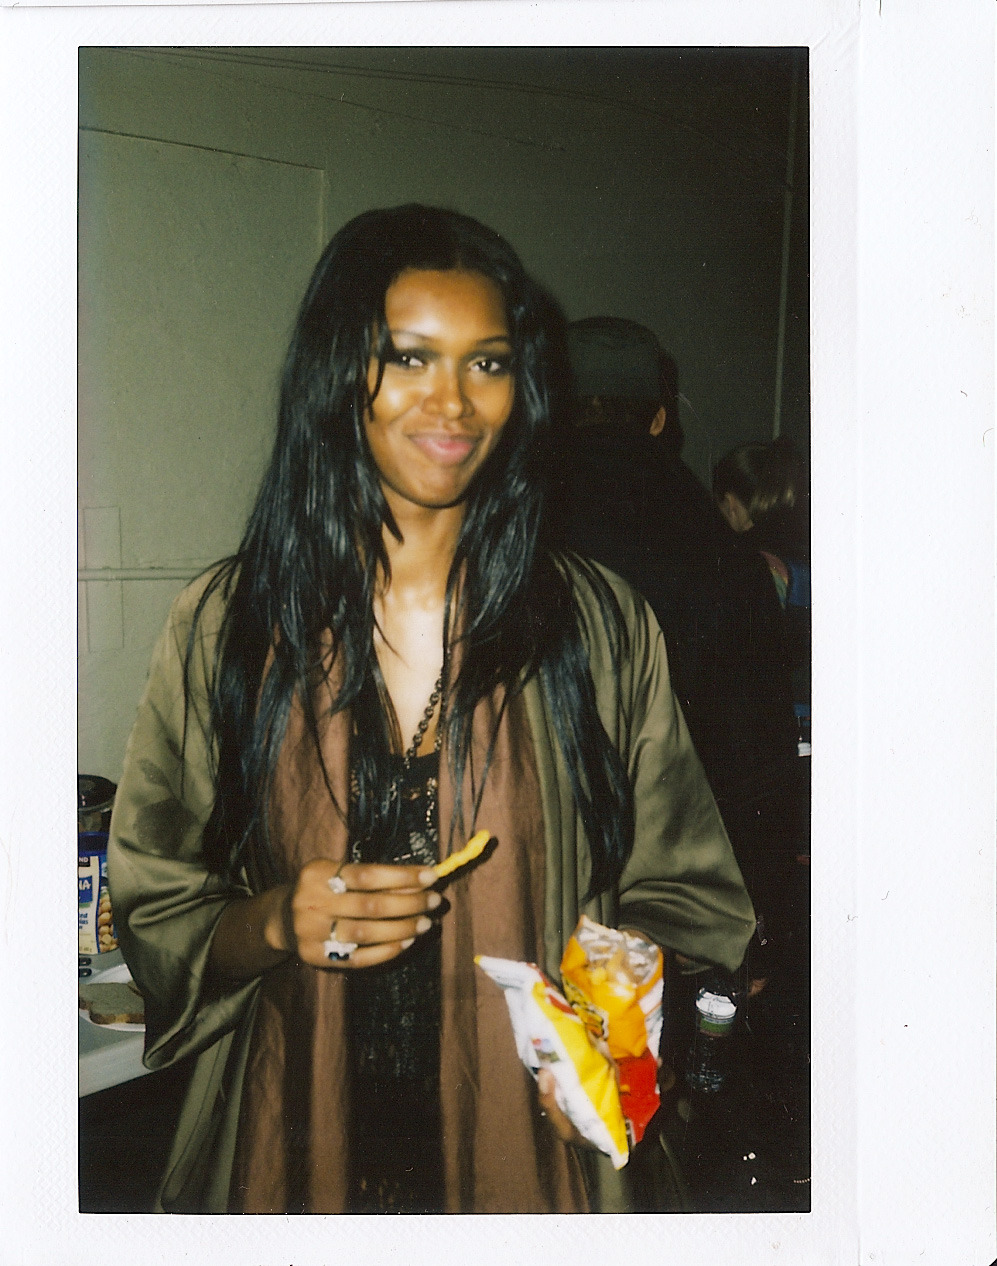 Subject: Jessica White (@IamJessWhite) (ELITE NY) Occasion: 'Motivation' Music Video Shoot Location: Downtown LA Camera: Fuji Instax 210 Film: Fuji Instax Wide Notes: Models and Cheetos go hand in hand. Thanx :)